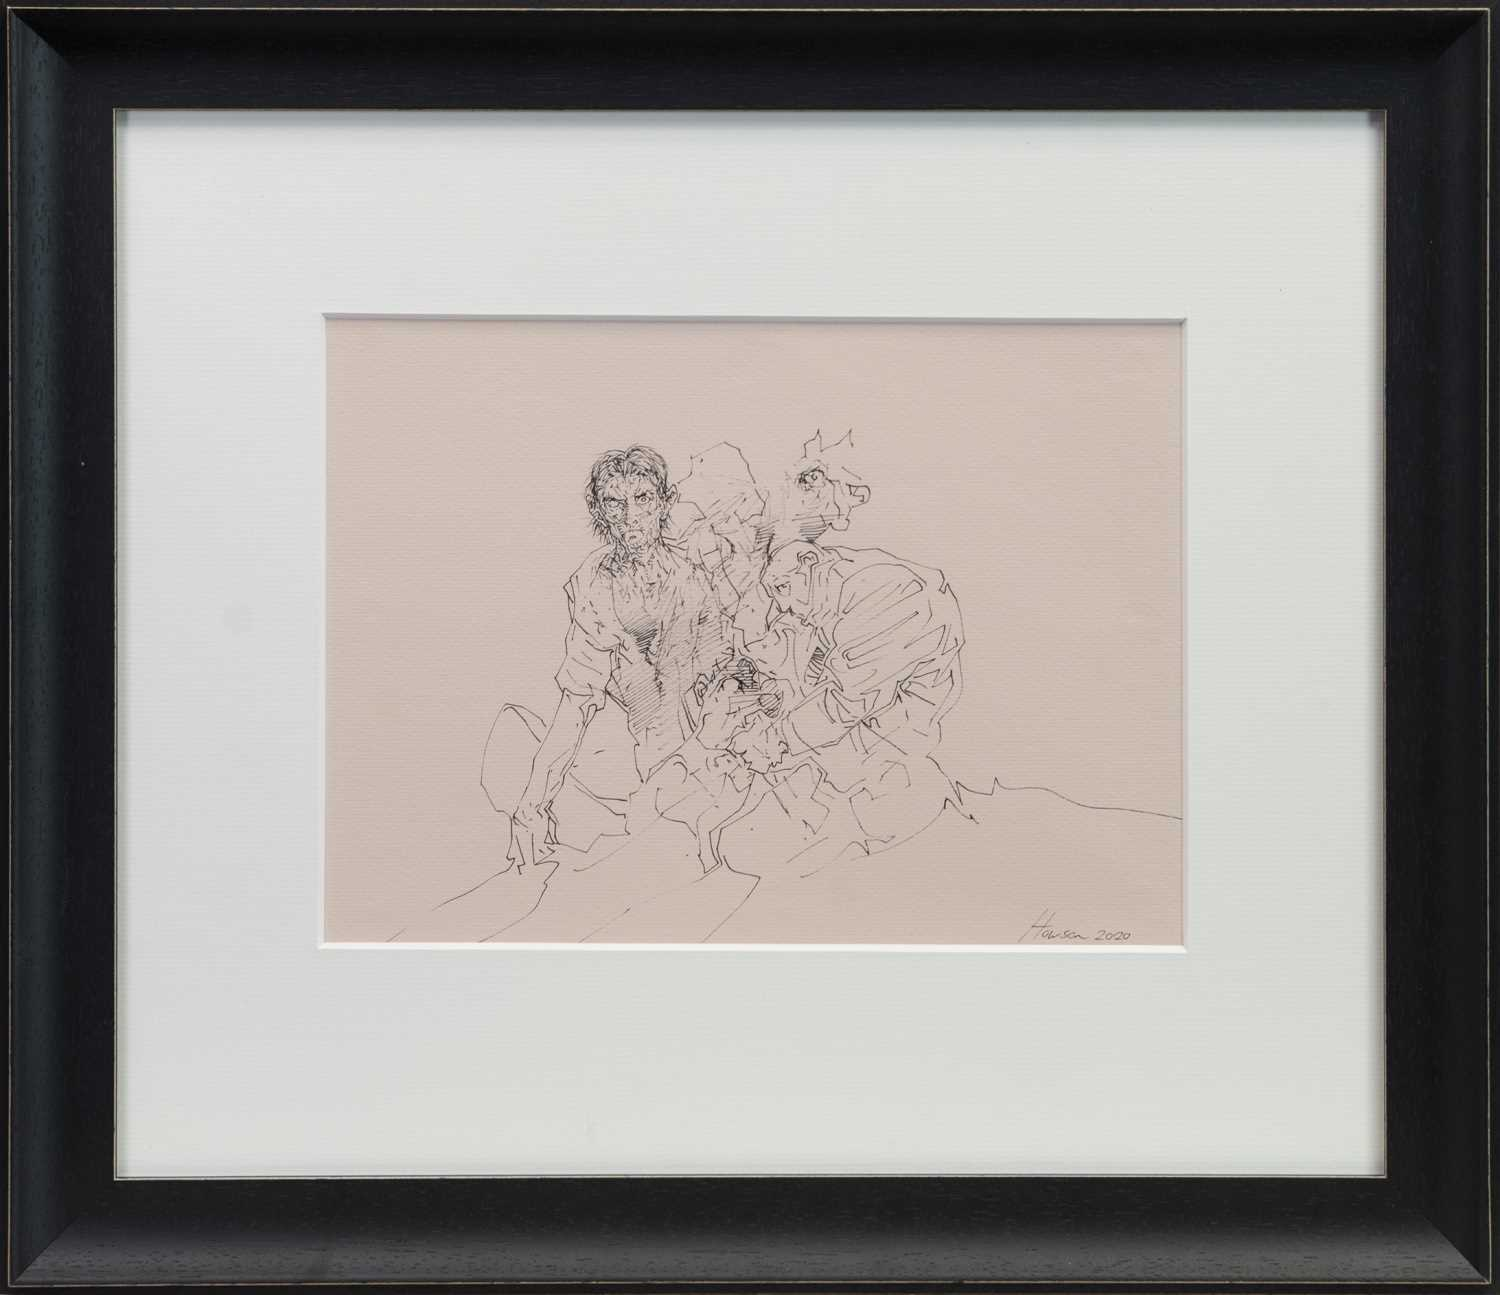 Lot 751 - AN UNTITLED INK SKETCH BY PETER HOWSON